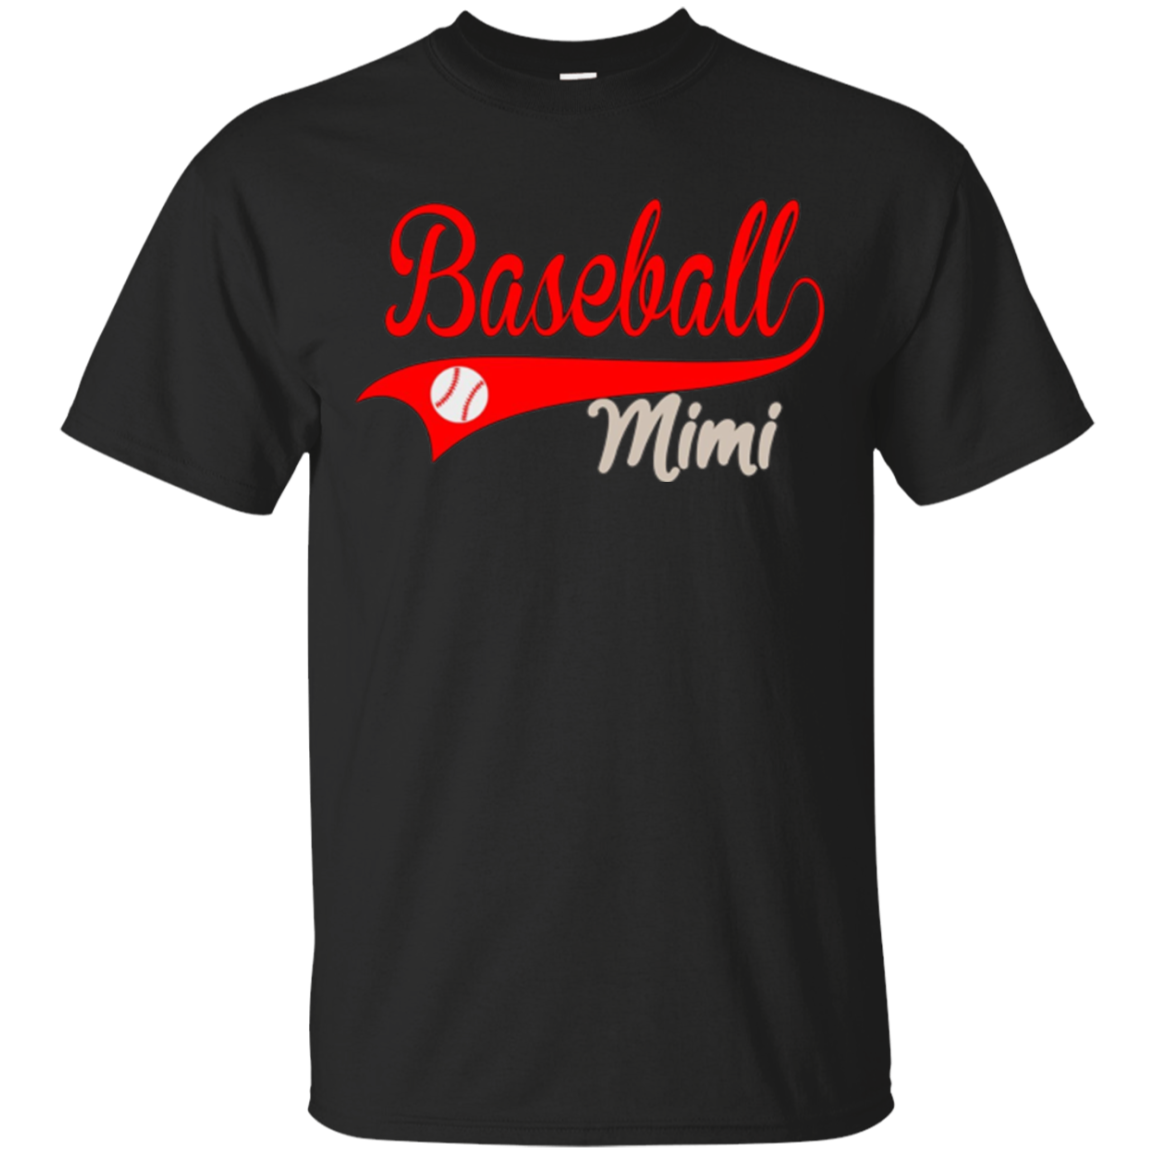 Baseball Mimi T-Shirt - Baseball Lover T-Shirt